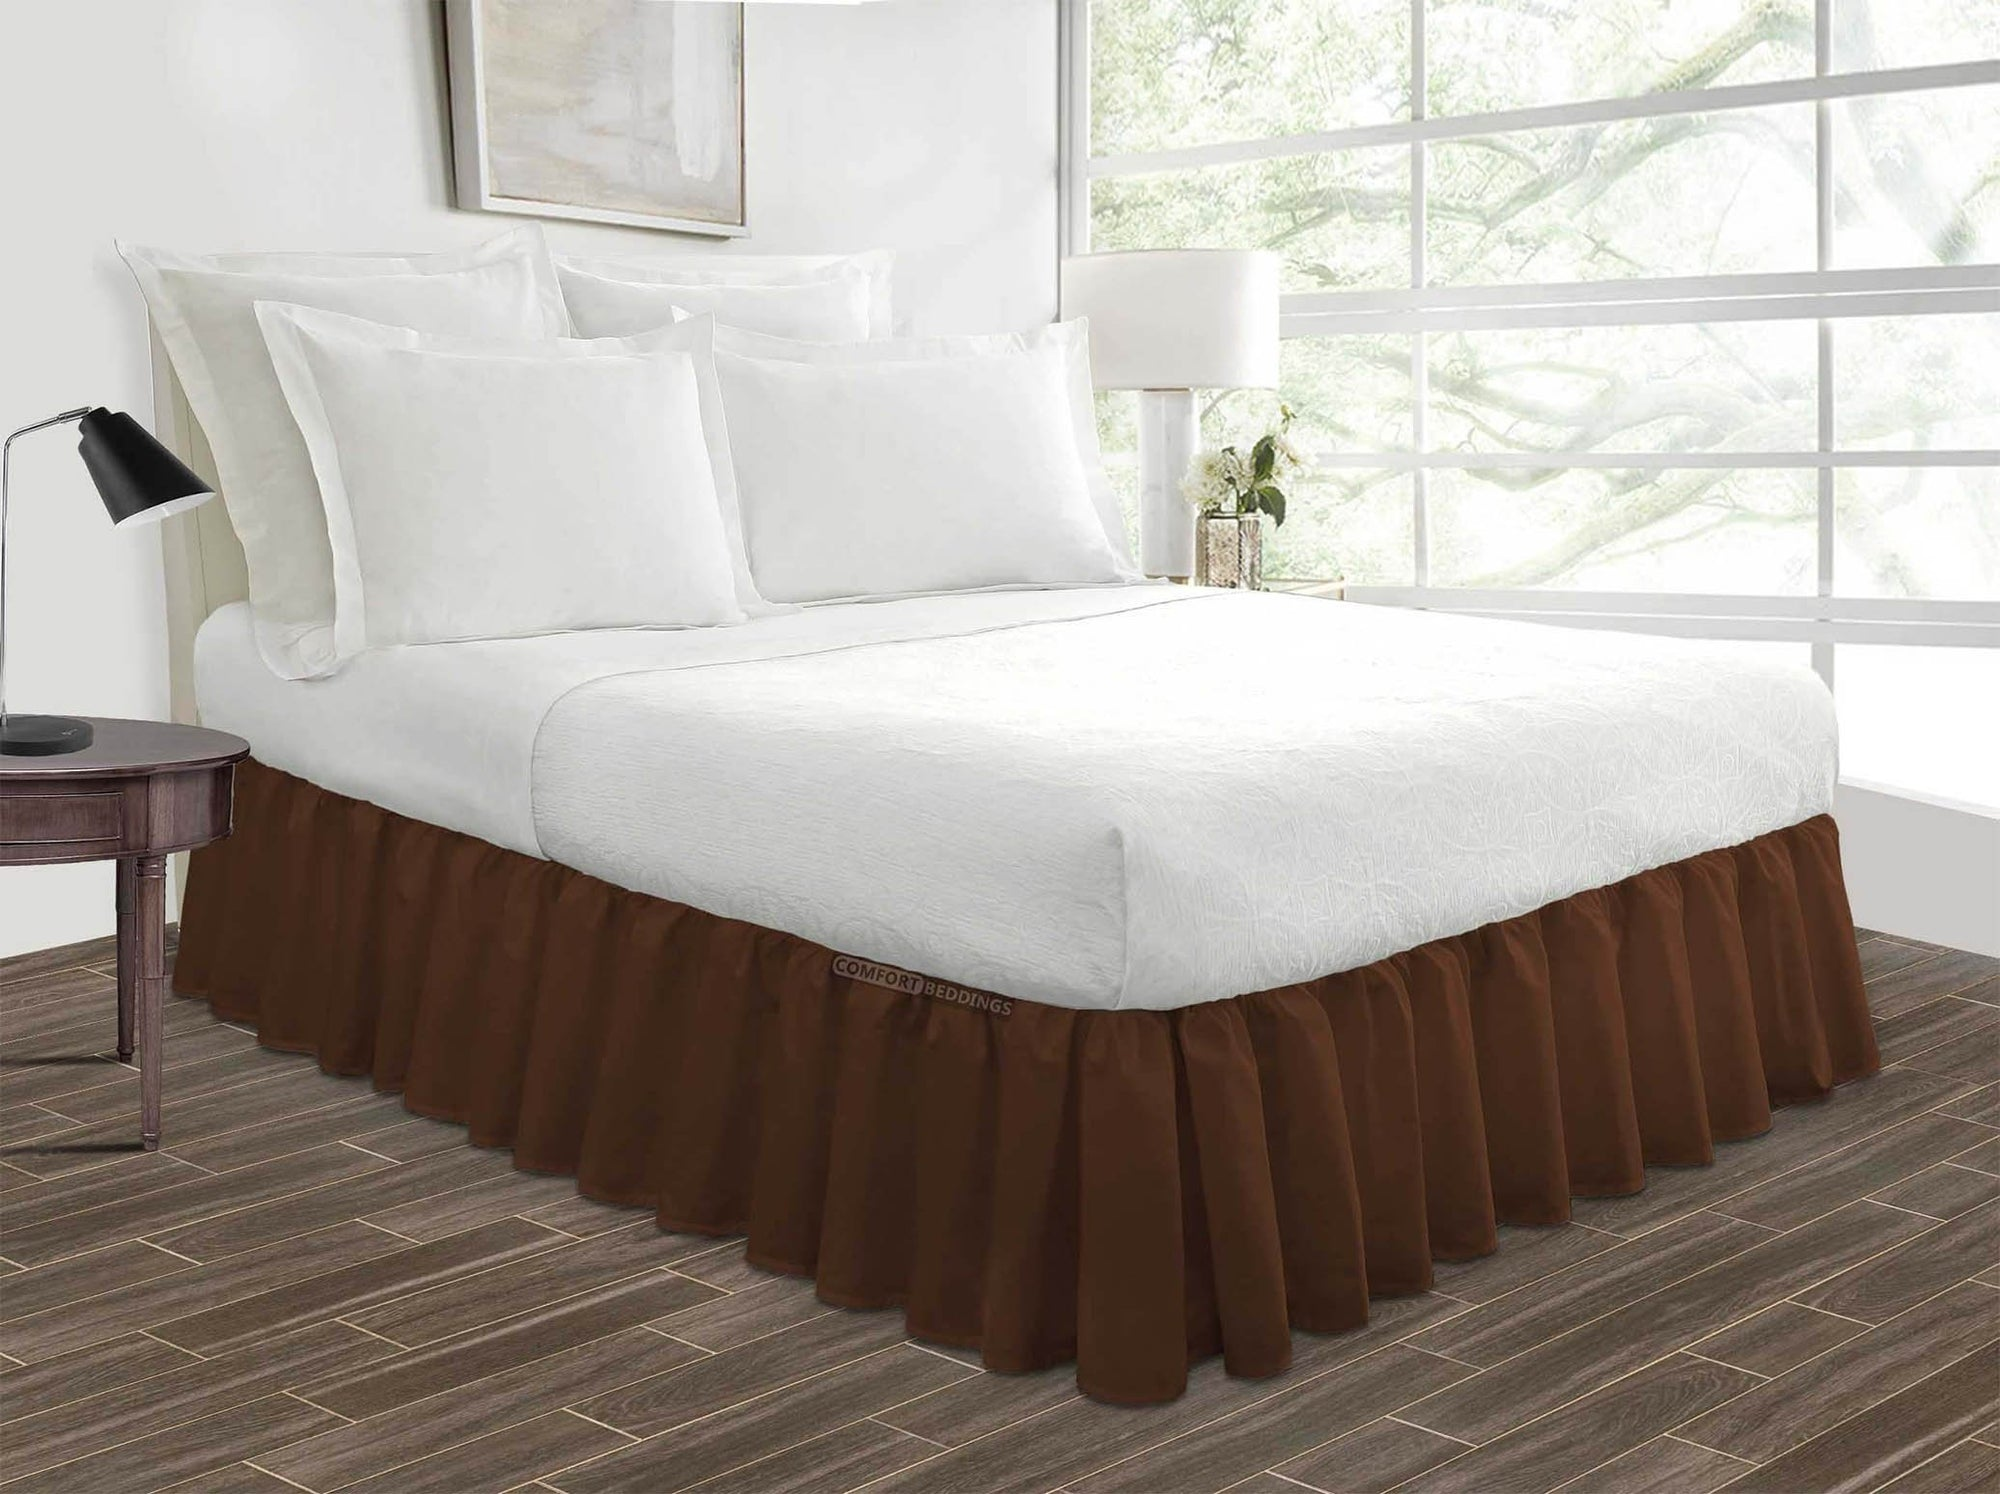 1000 TC chocolate ruffled bed skirt